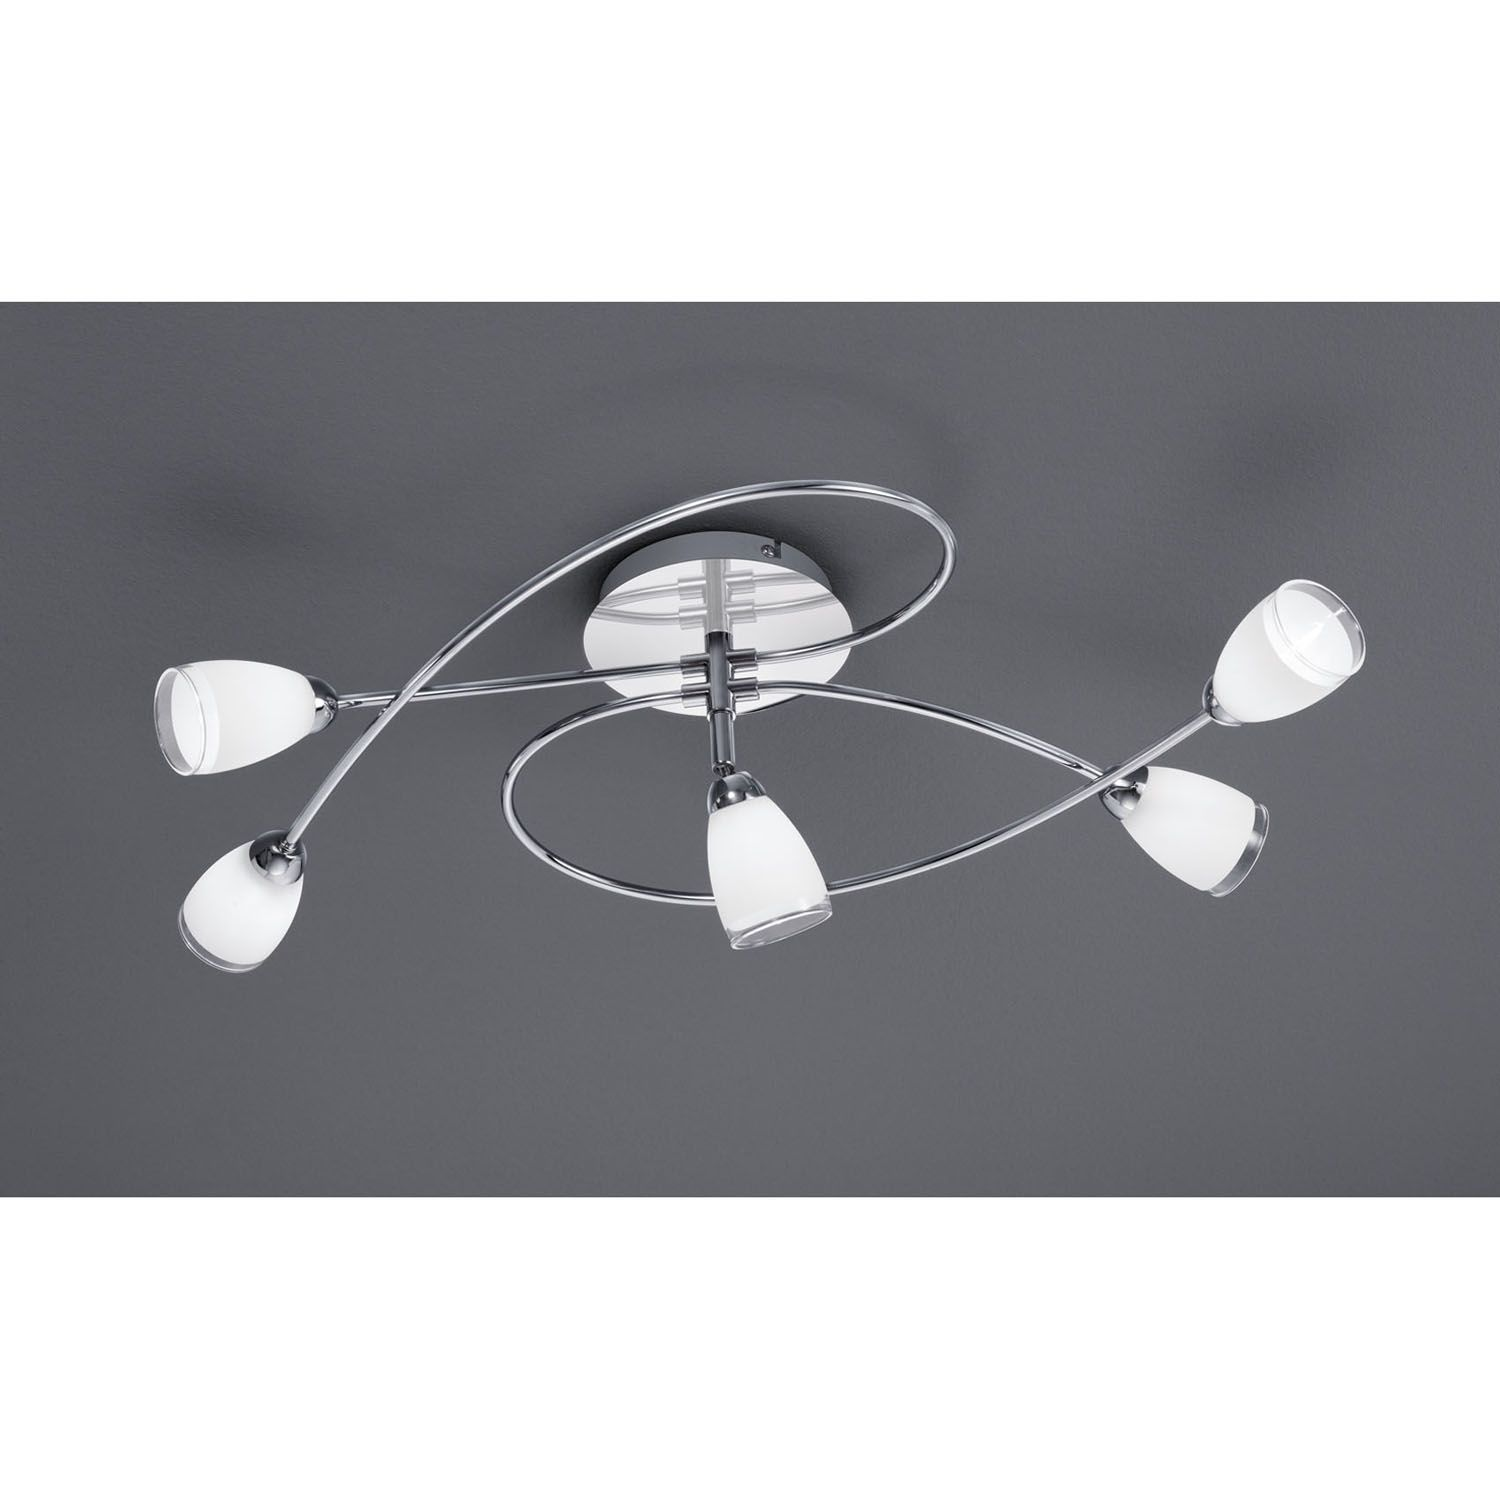 Trio Lighting 5 Light Led Ceiling Spotlight With Satin Glass